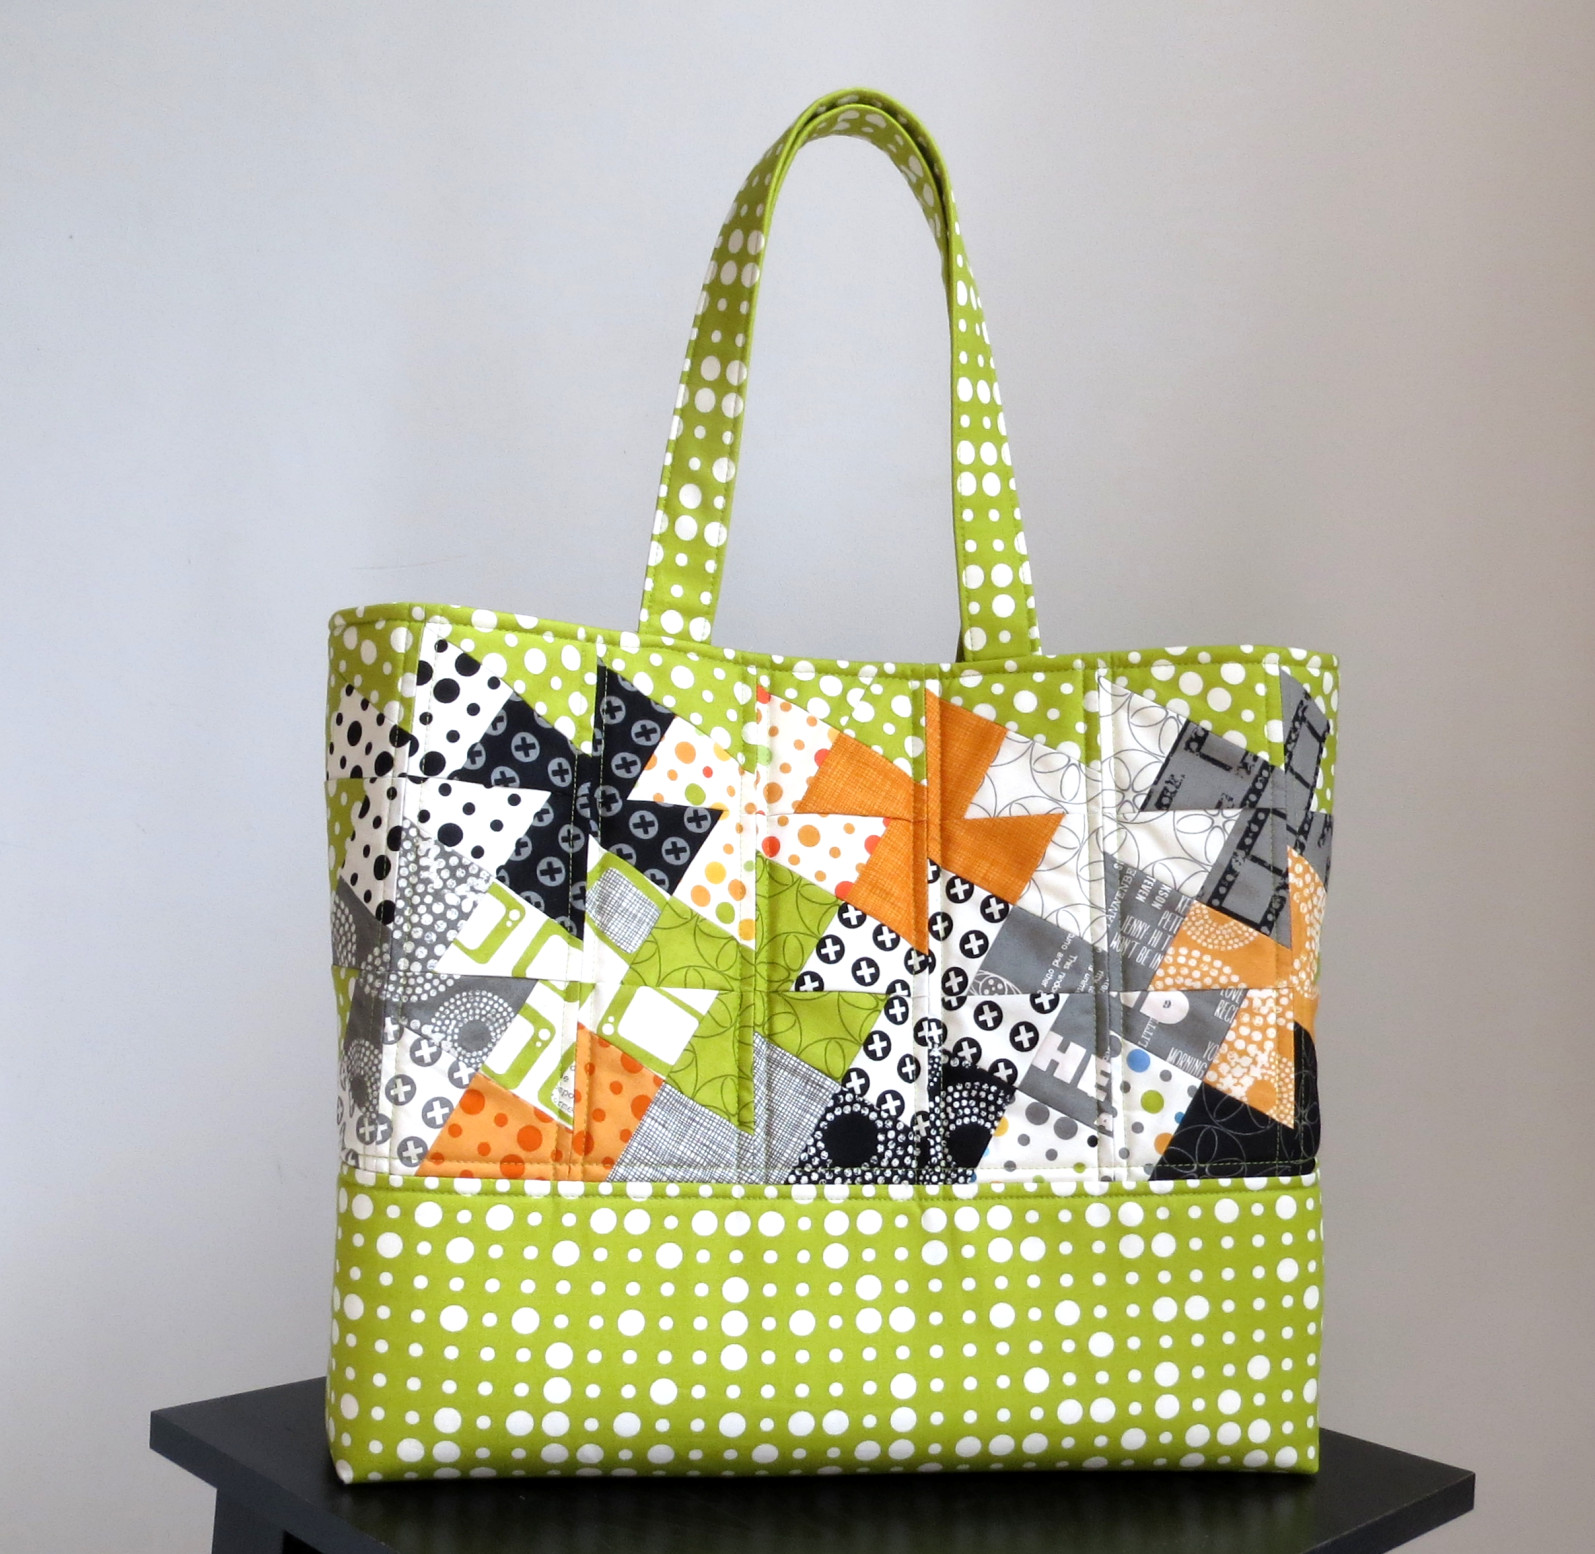 Tote Bag Pattern Elegant tote 12 Simply Charming Twister tote – Around the Bobbin Of Beautiful 46 Ideas tote Bag Pattern